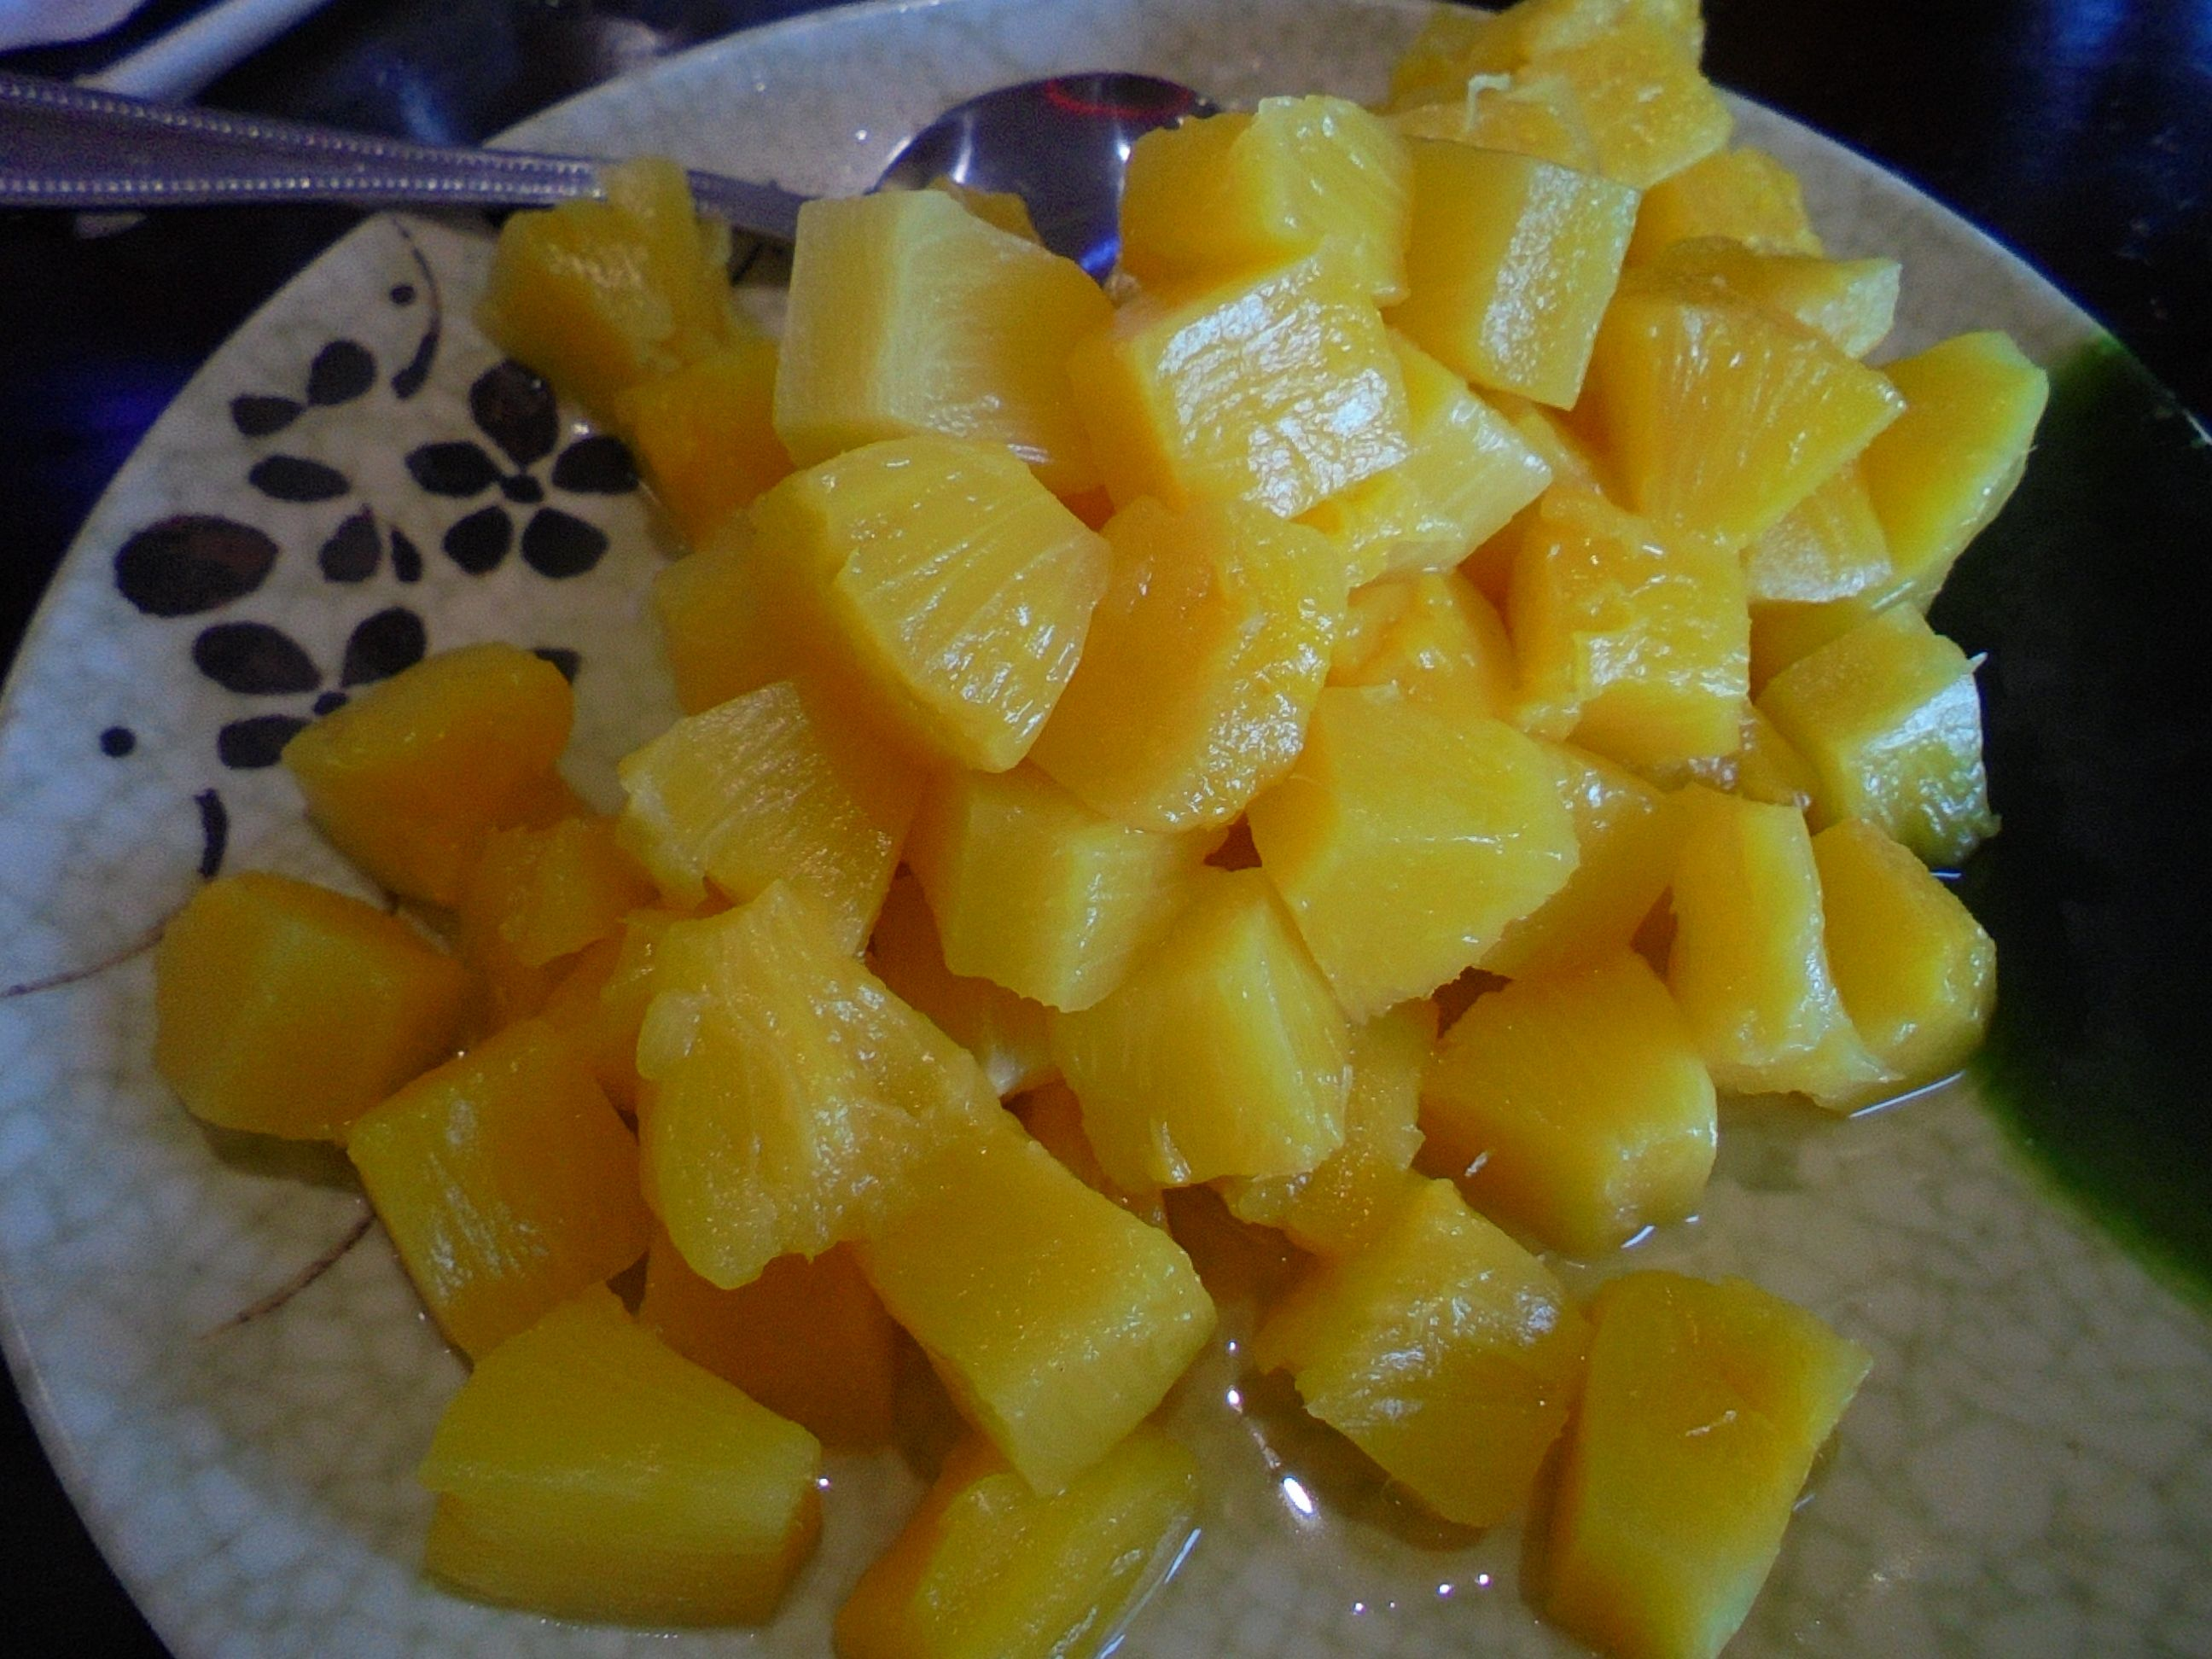 #Pineapple by #Dole for #dessert - www.drewrynewsnetwork.com/forum/reviews